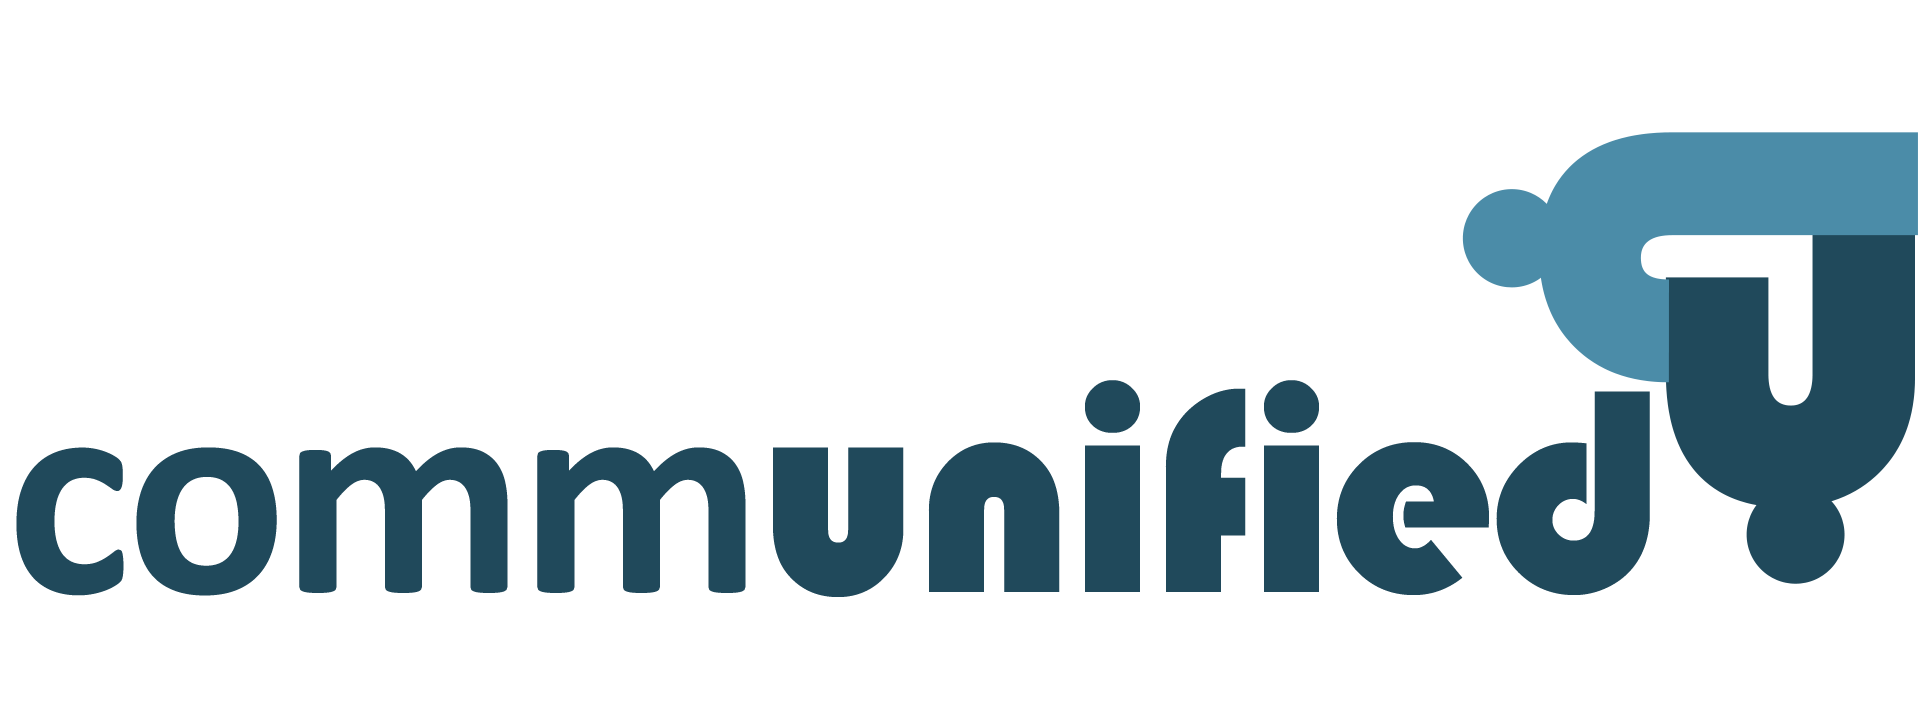 logo_text_mid_large 2.png